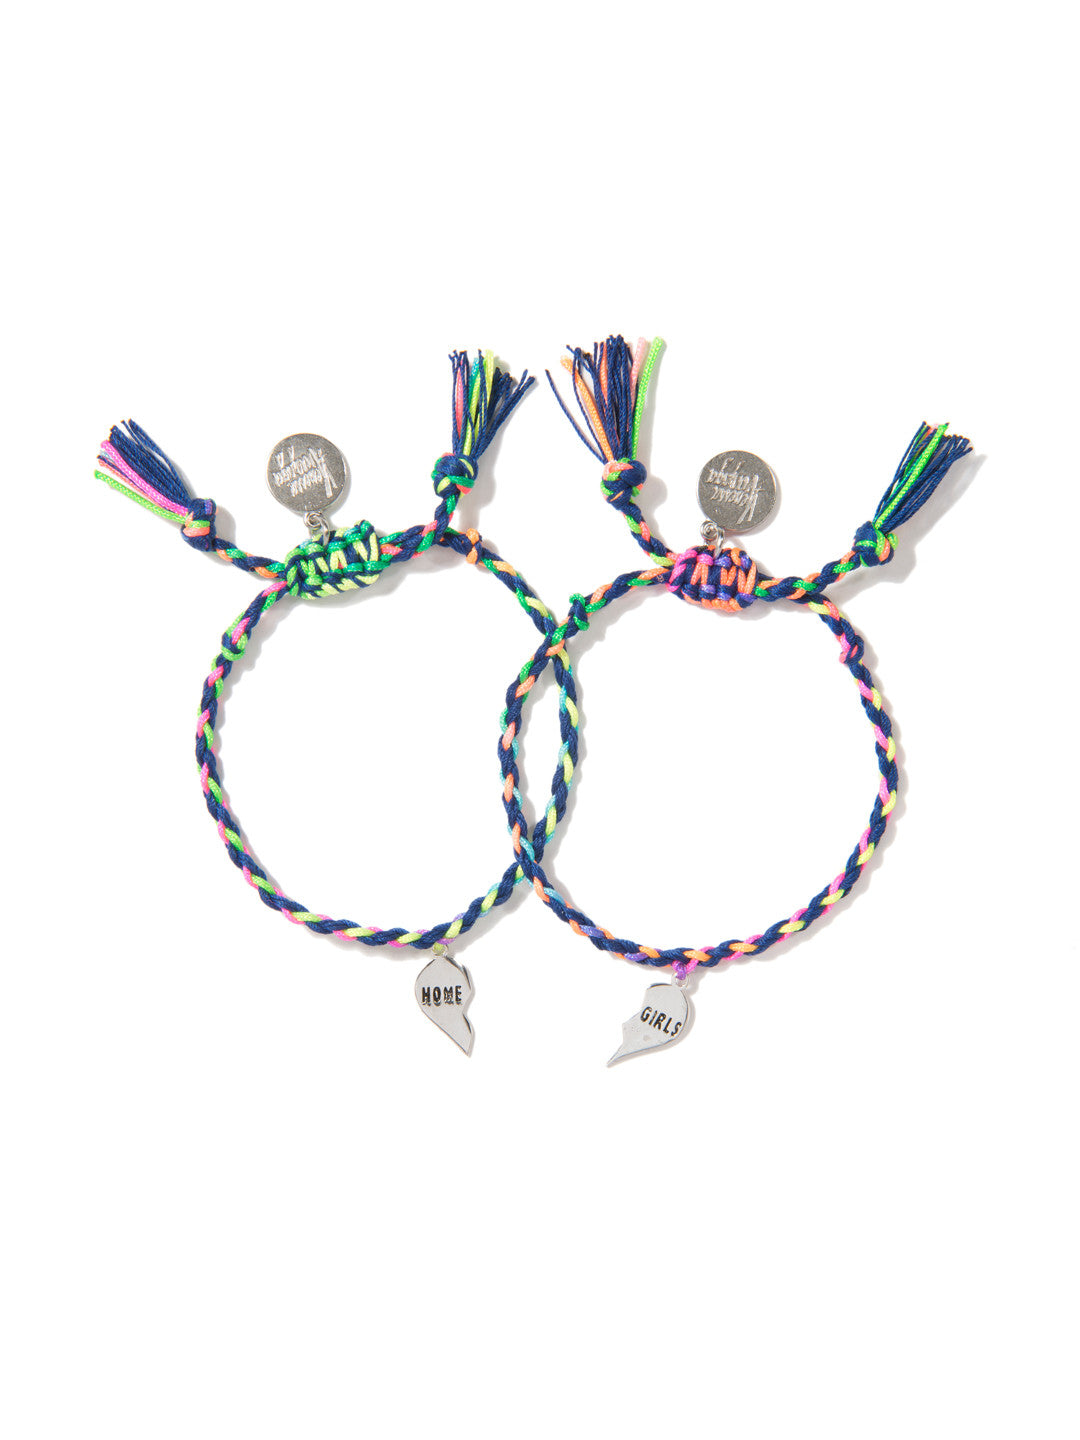 HOME GIRLS BRACELET SET (BLUE RAINBOW) – Venessa Arizaga